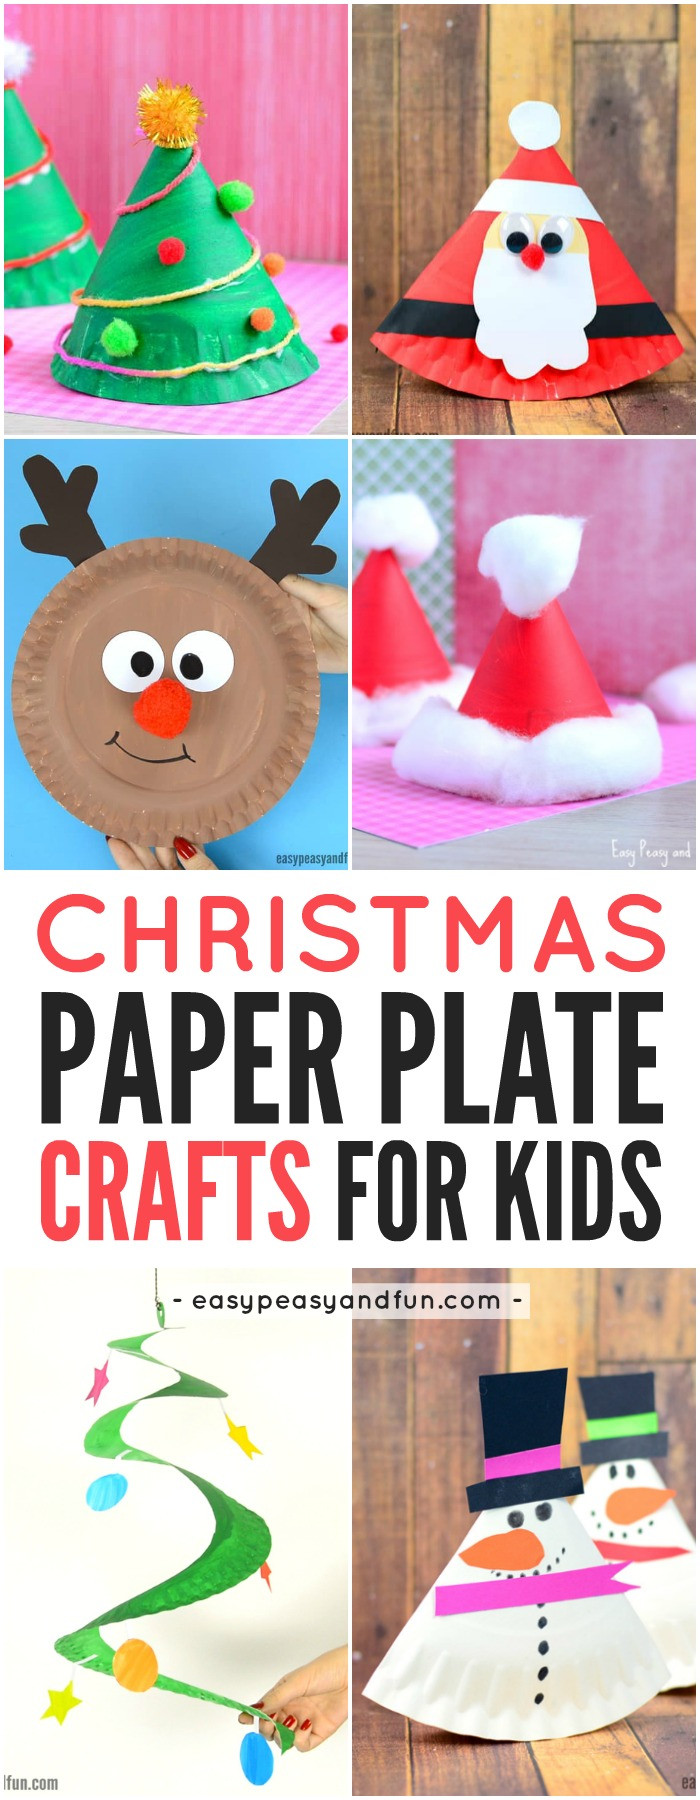 Best ideas about Crafts To Make For Christmas . Save or Pin Paper Plate Christmas Crafts Easy Peasy and Fun Now.